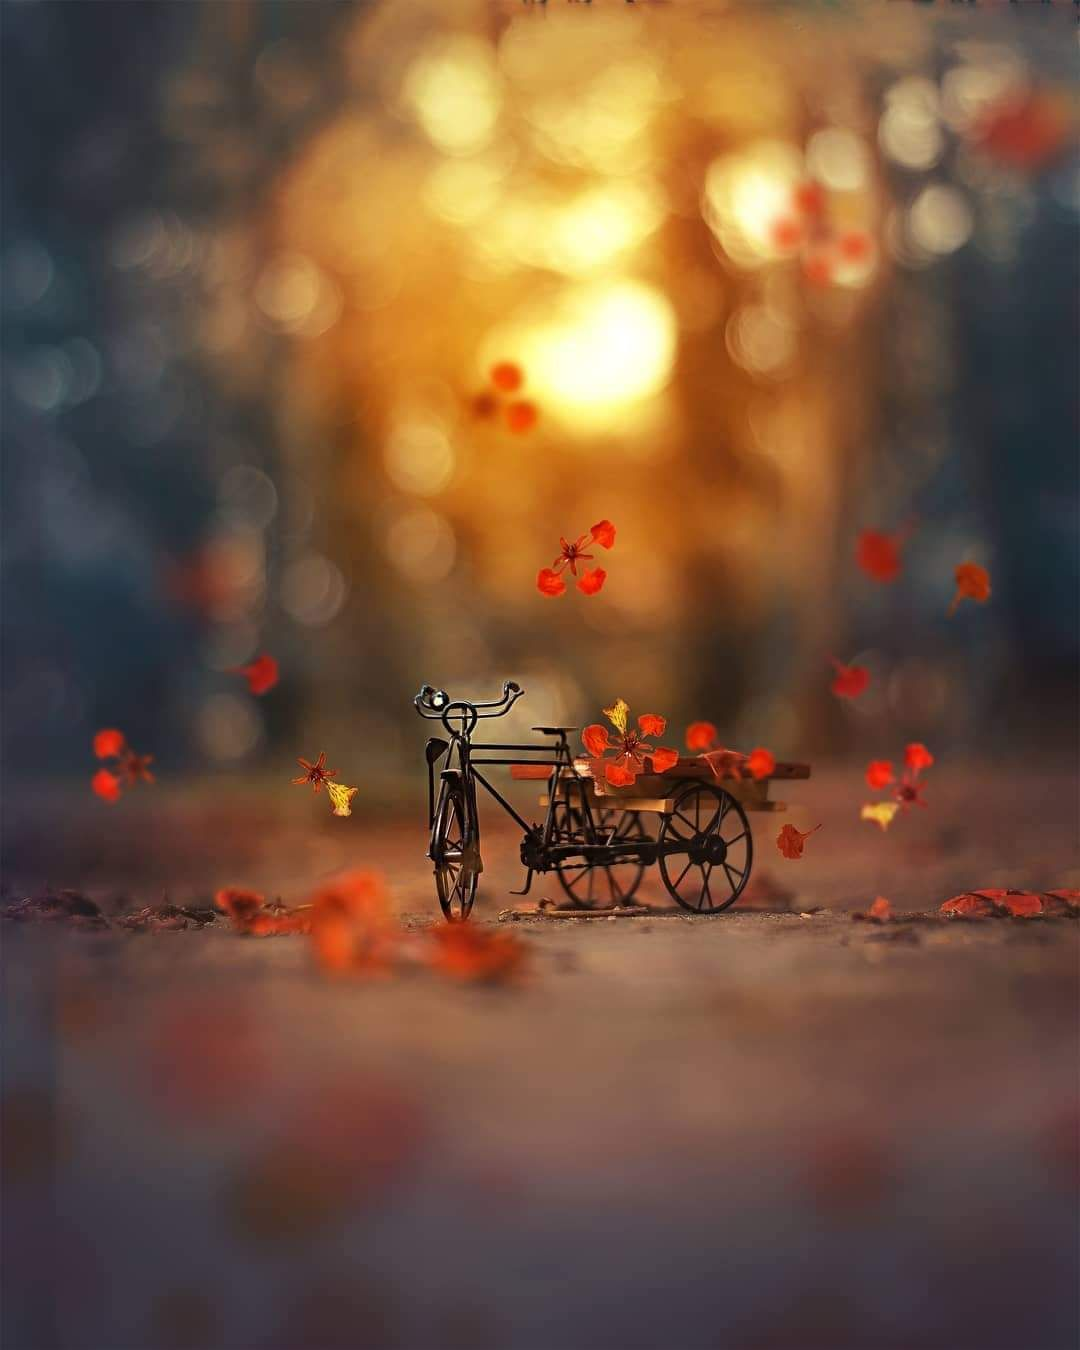 Ale On Twitter In 2021 Miniature Photography Cool Pictures For Wallpaper Beautiful Nature Wallpaper